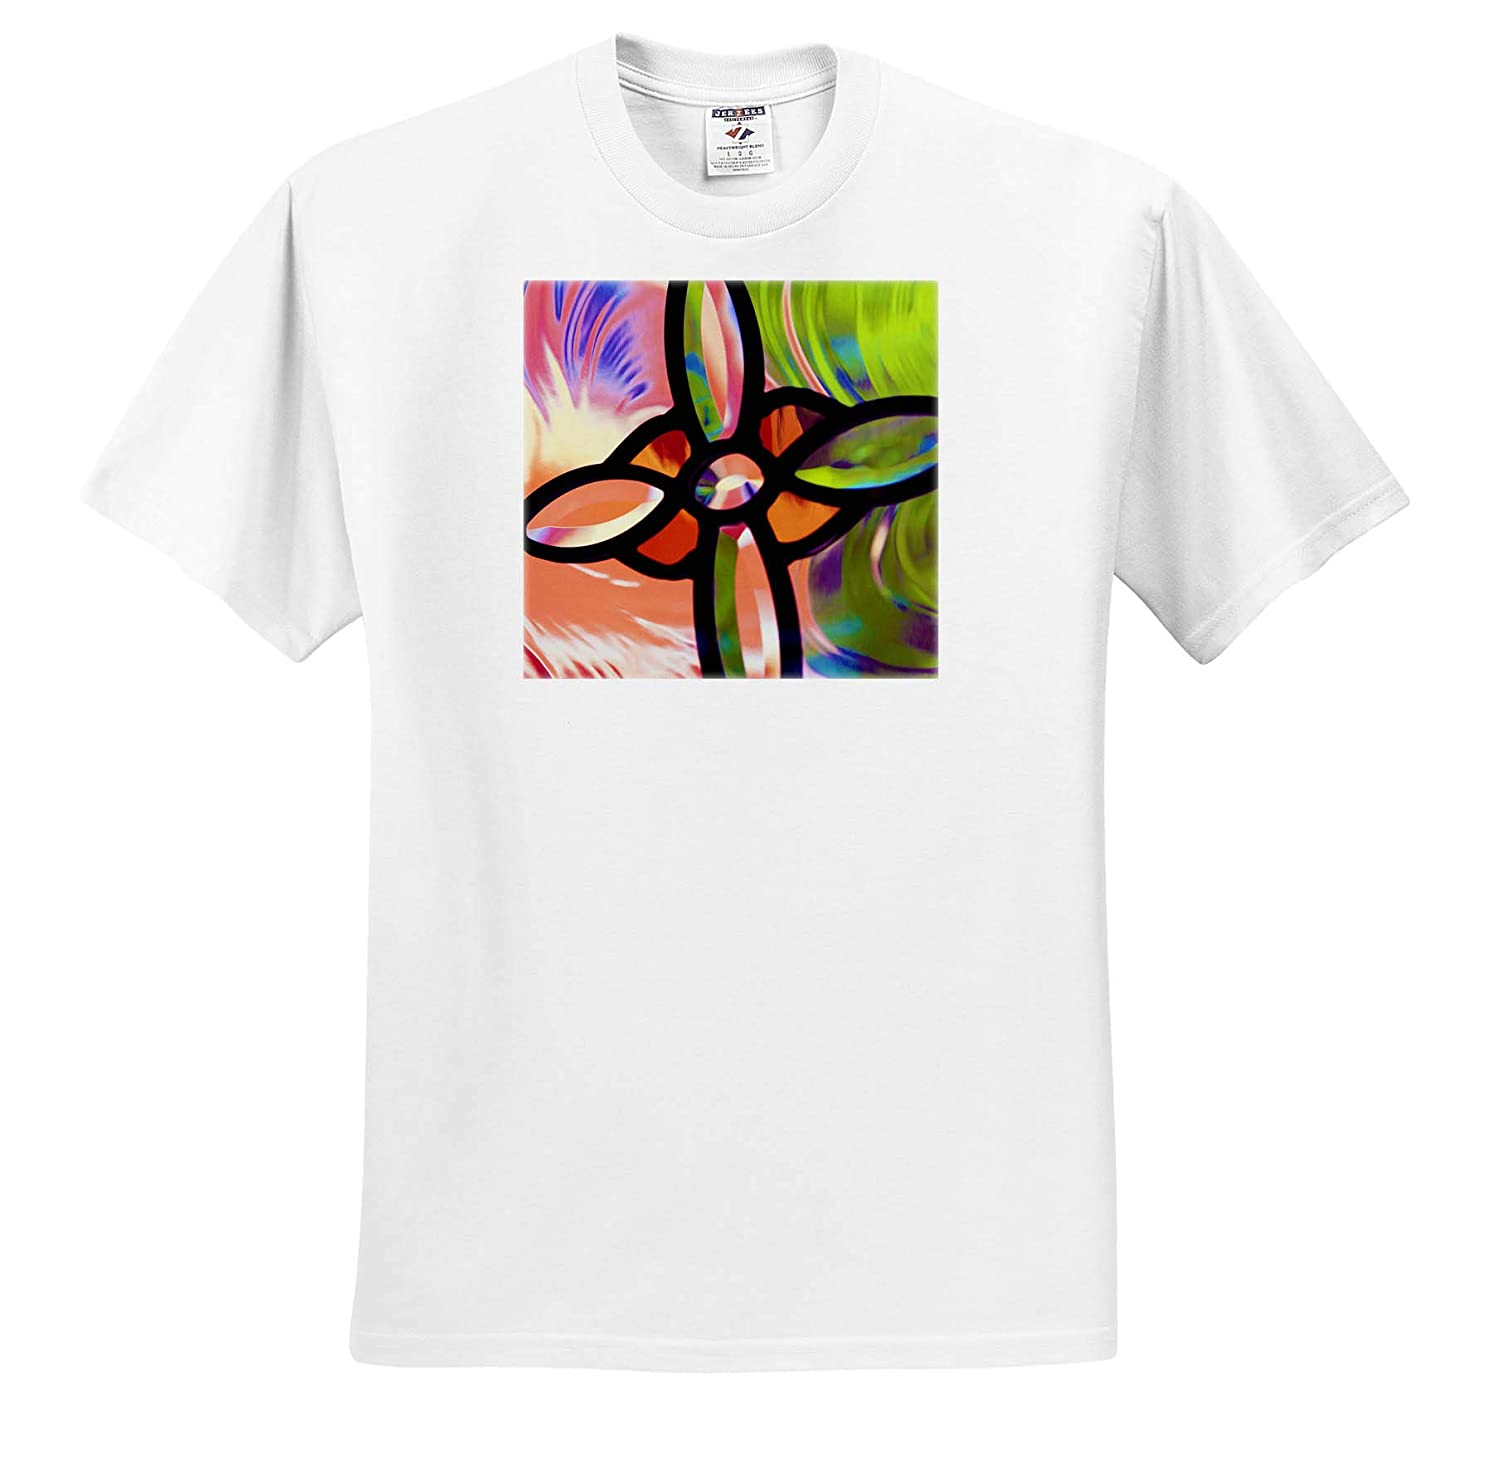 3dRose Stamp City - T-Shirts Miscellaneous Close-up Photo of a Glass Door Picking up The Colors of The Outdoors